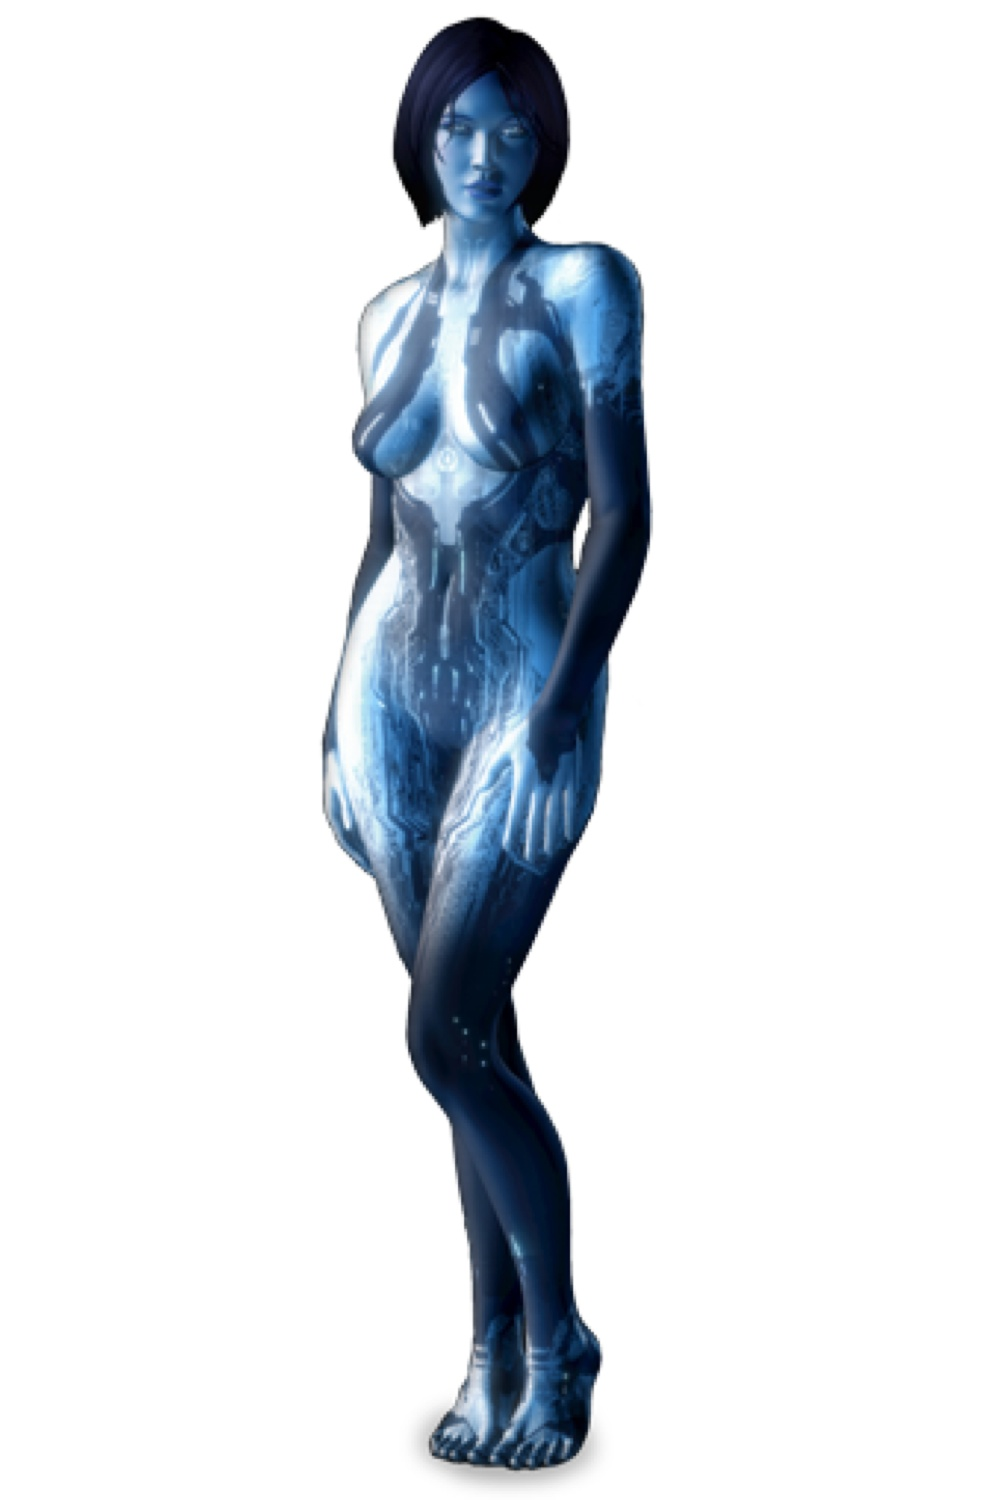 Cortana, the artificially-intelligent character from the popular Halo video game series